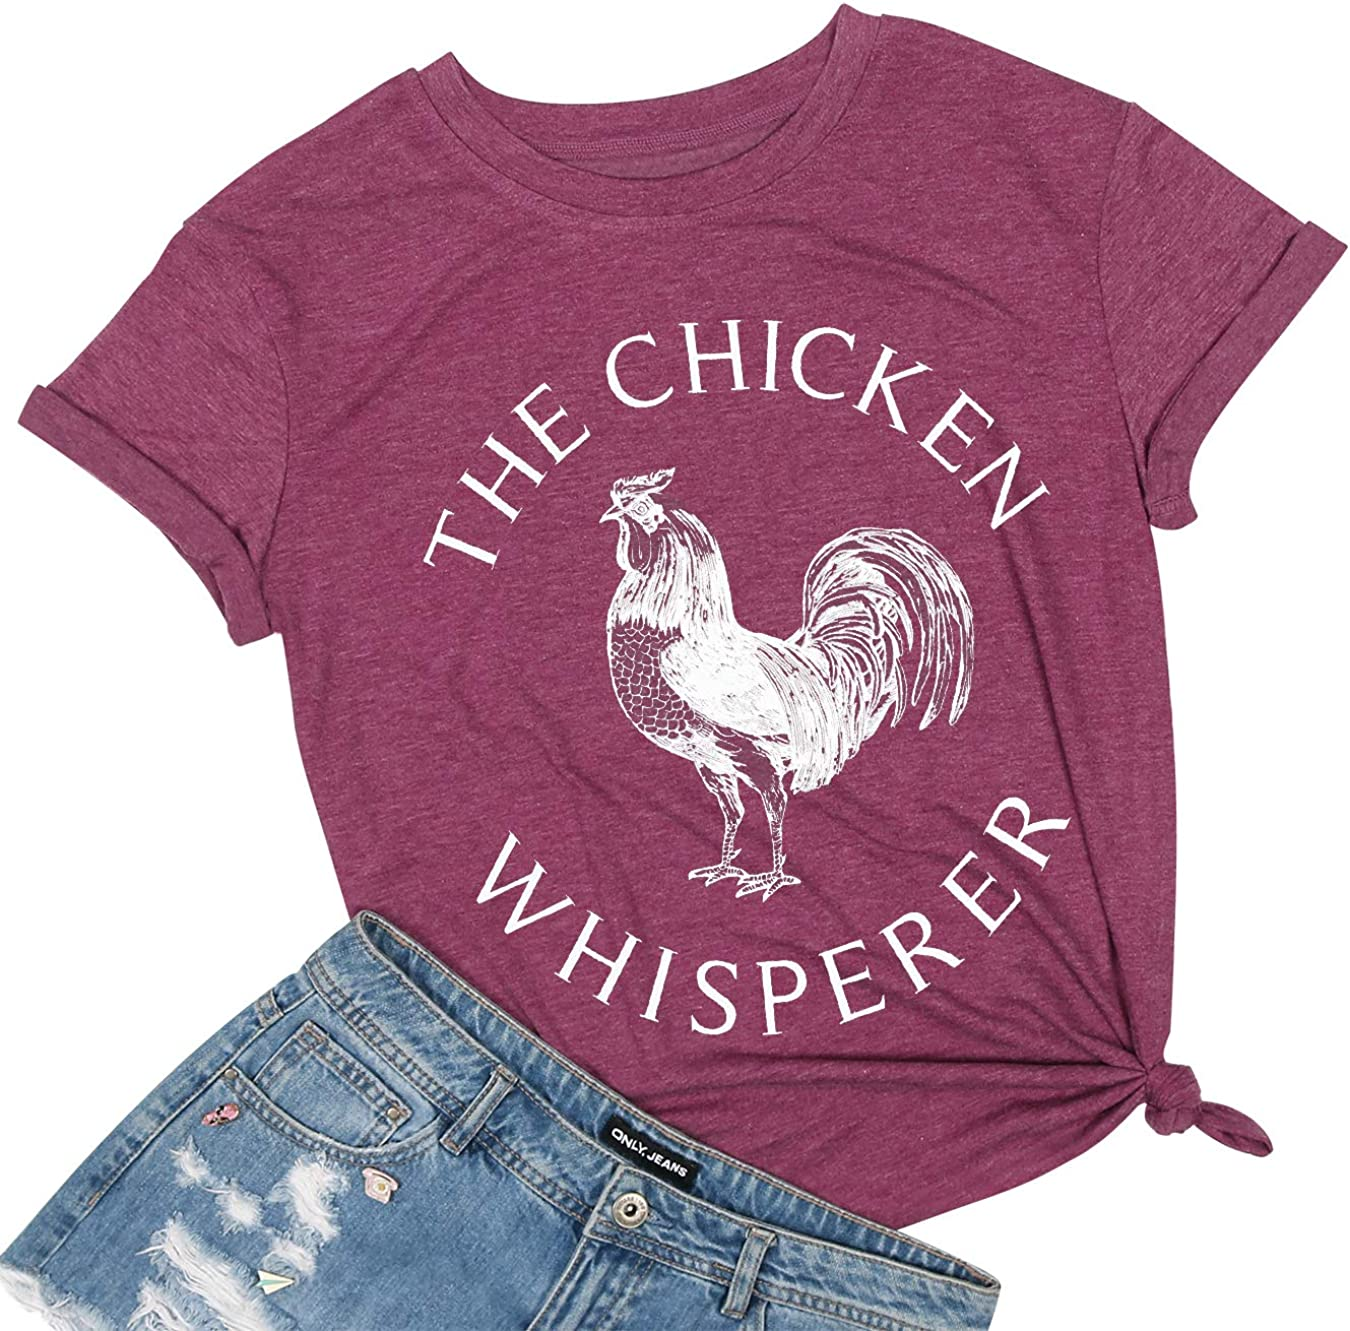 The Chicken Whisperer Shirt Funny Cute Chicken Graphic Tees Women Letter Print Short Sleeves Casual Tops T Shirts